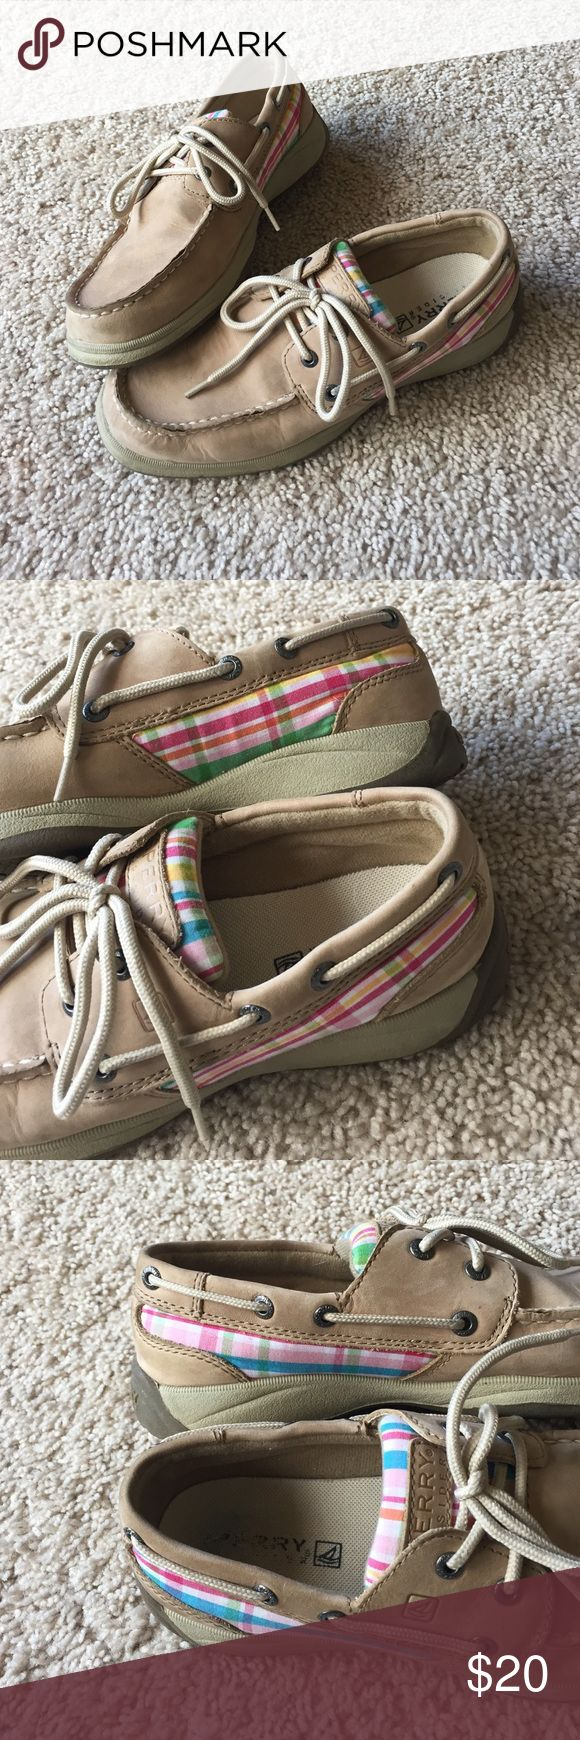 EUC youth/ladies light colored plaid Sperry's These boat shoes are super comfortable. Excellent used condition. Youth size 4, equivalent to ladies' 5.5. Light colored plaid mostly blue and pink with a bit of green, yellow and orange. A bit different on each shoe. Sperry Shoes